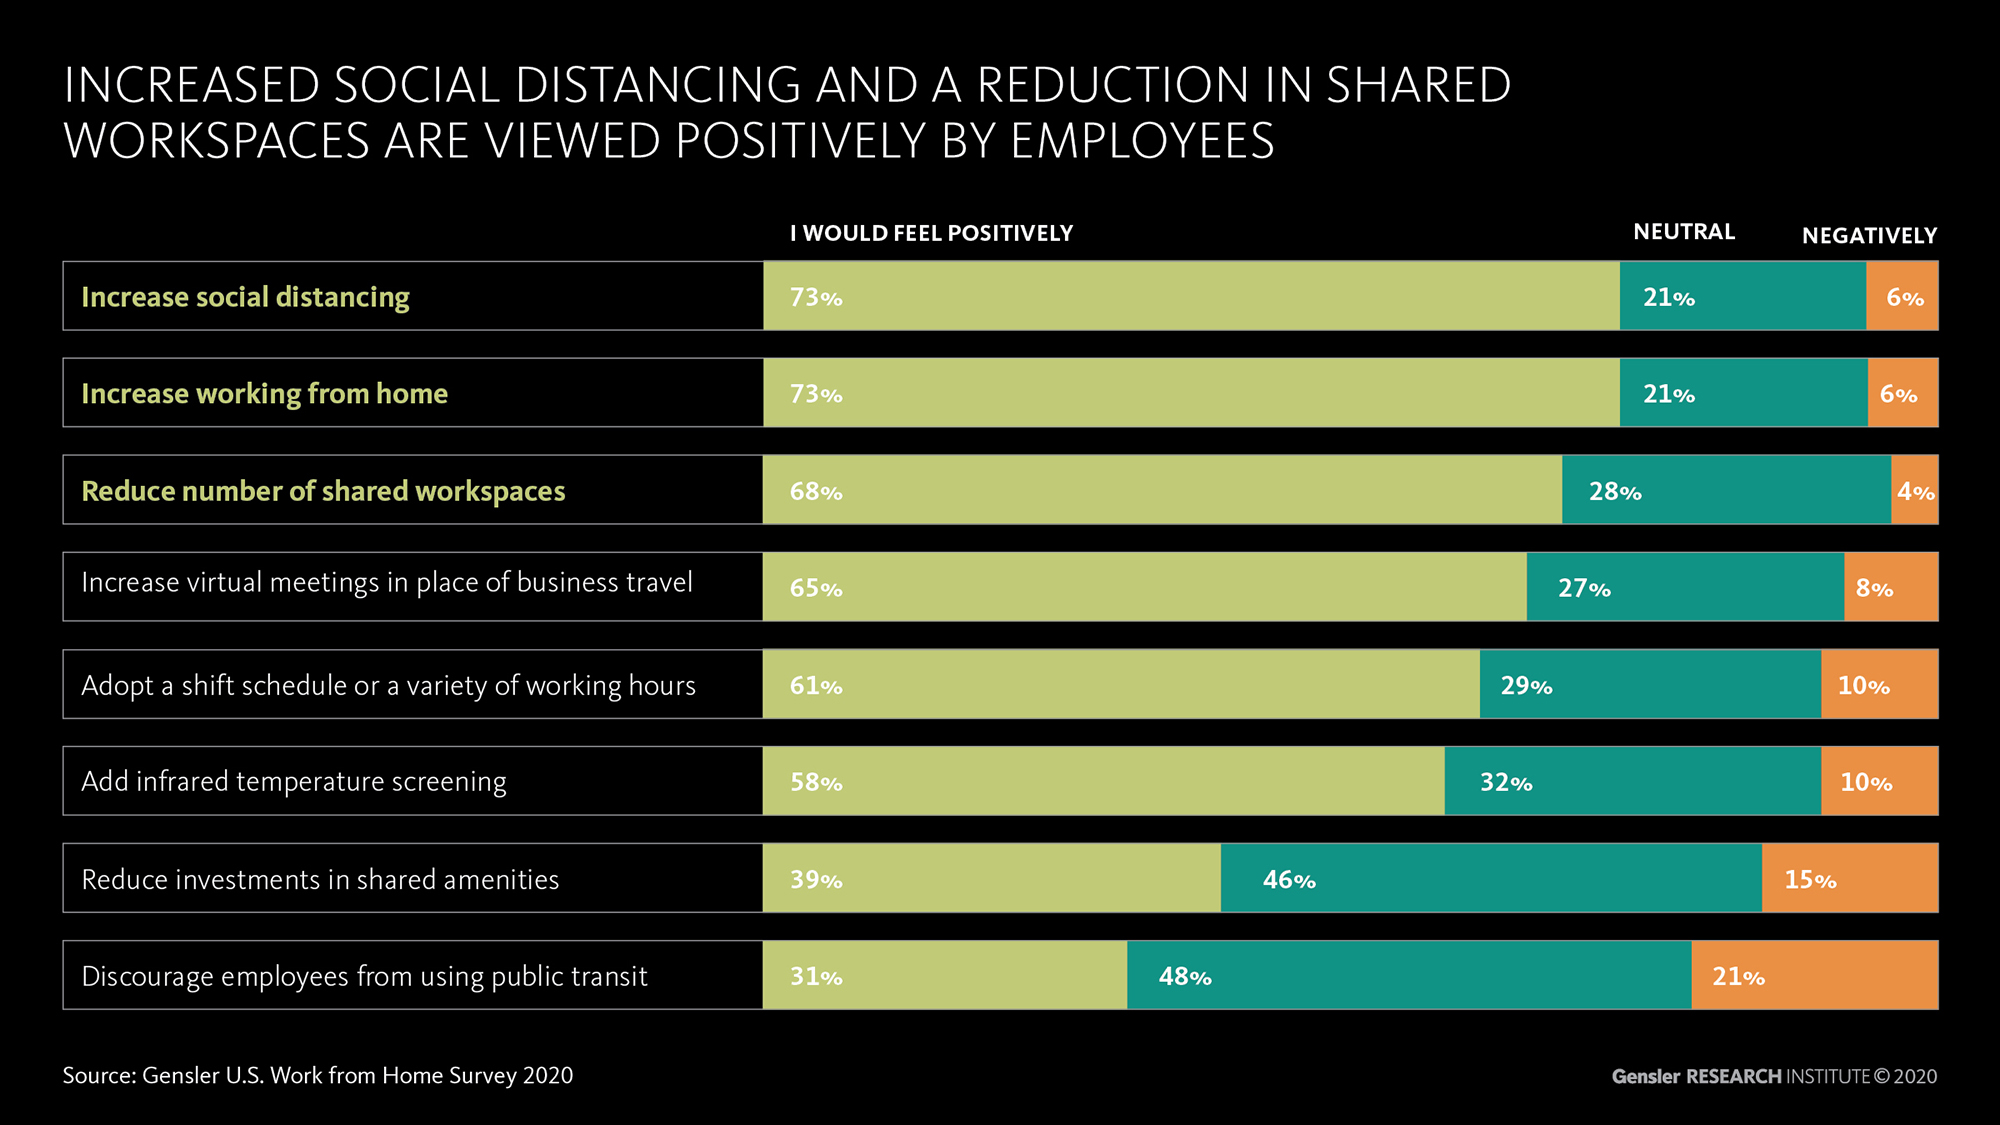 Info Graphic: Increased social distancing and a reduction in shared workspaces are viewed positively by employees